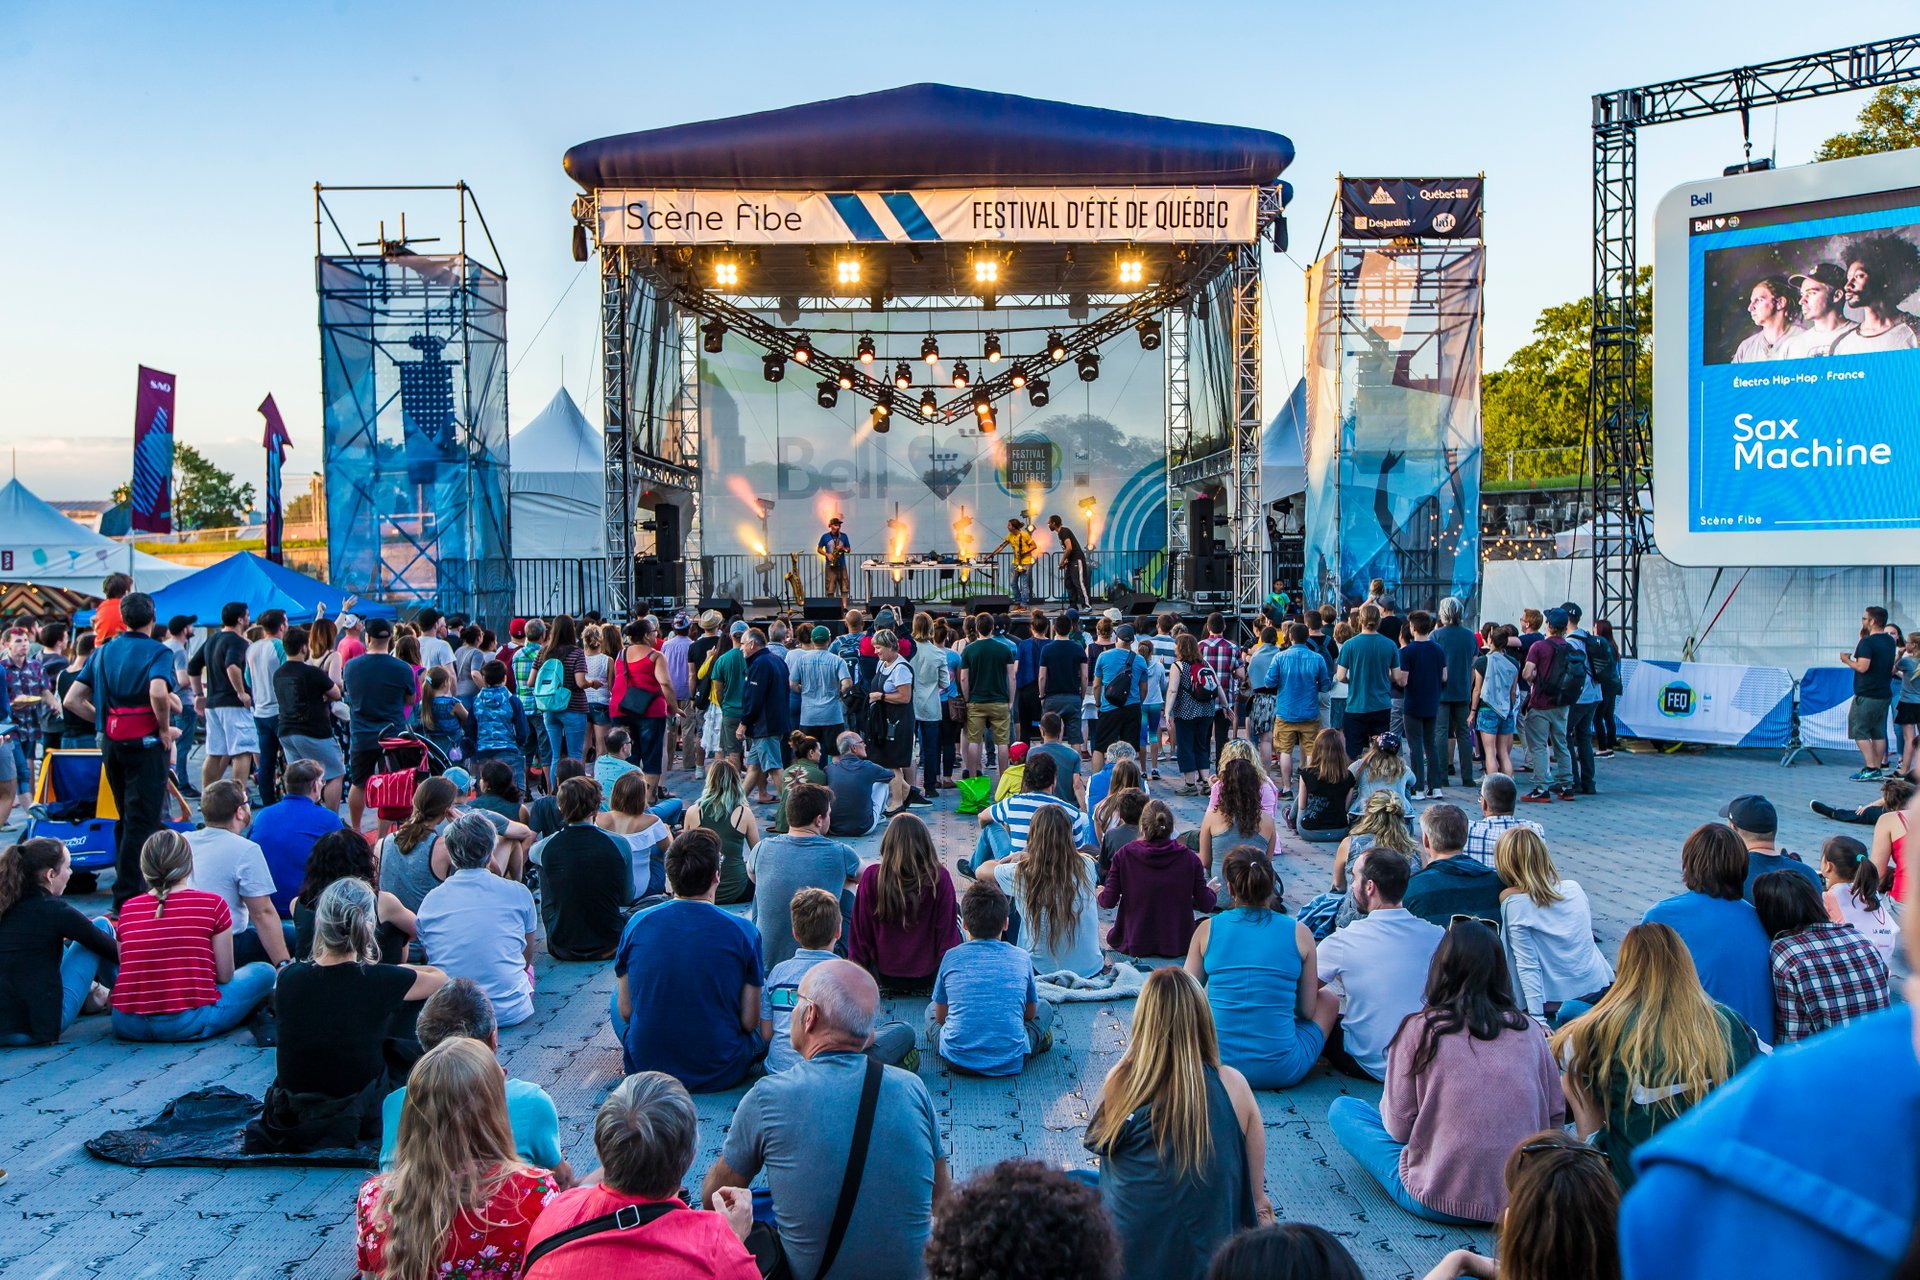 Best time for Quebec City Summer Festival (Festival d'été de Québec) in Quebec 2019